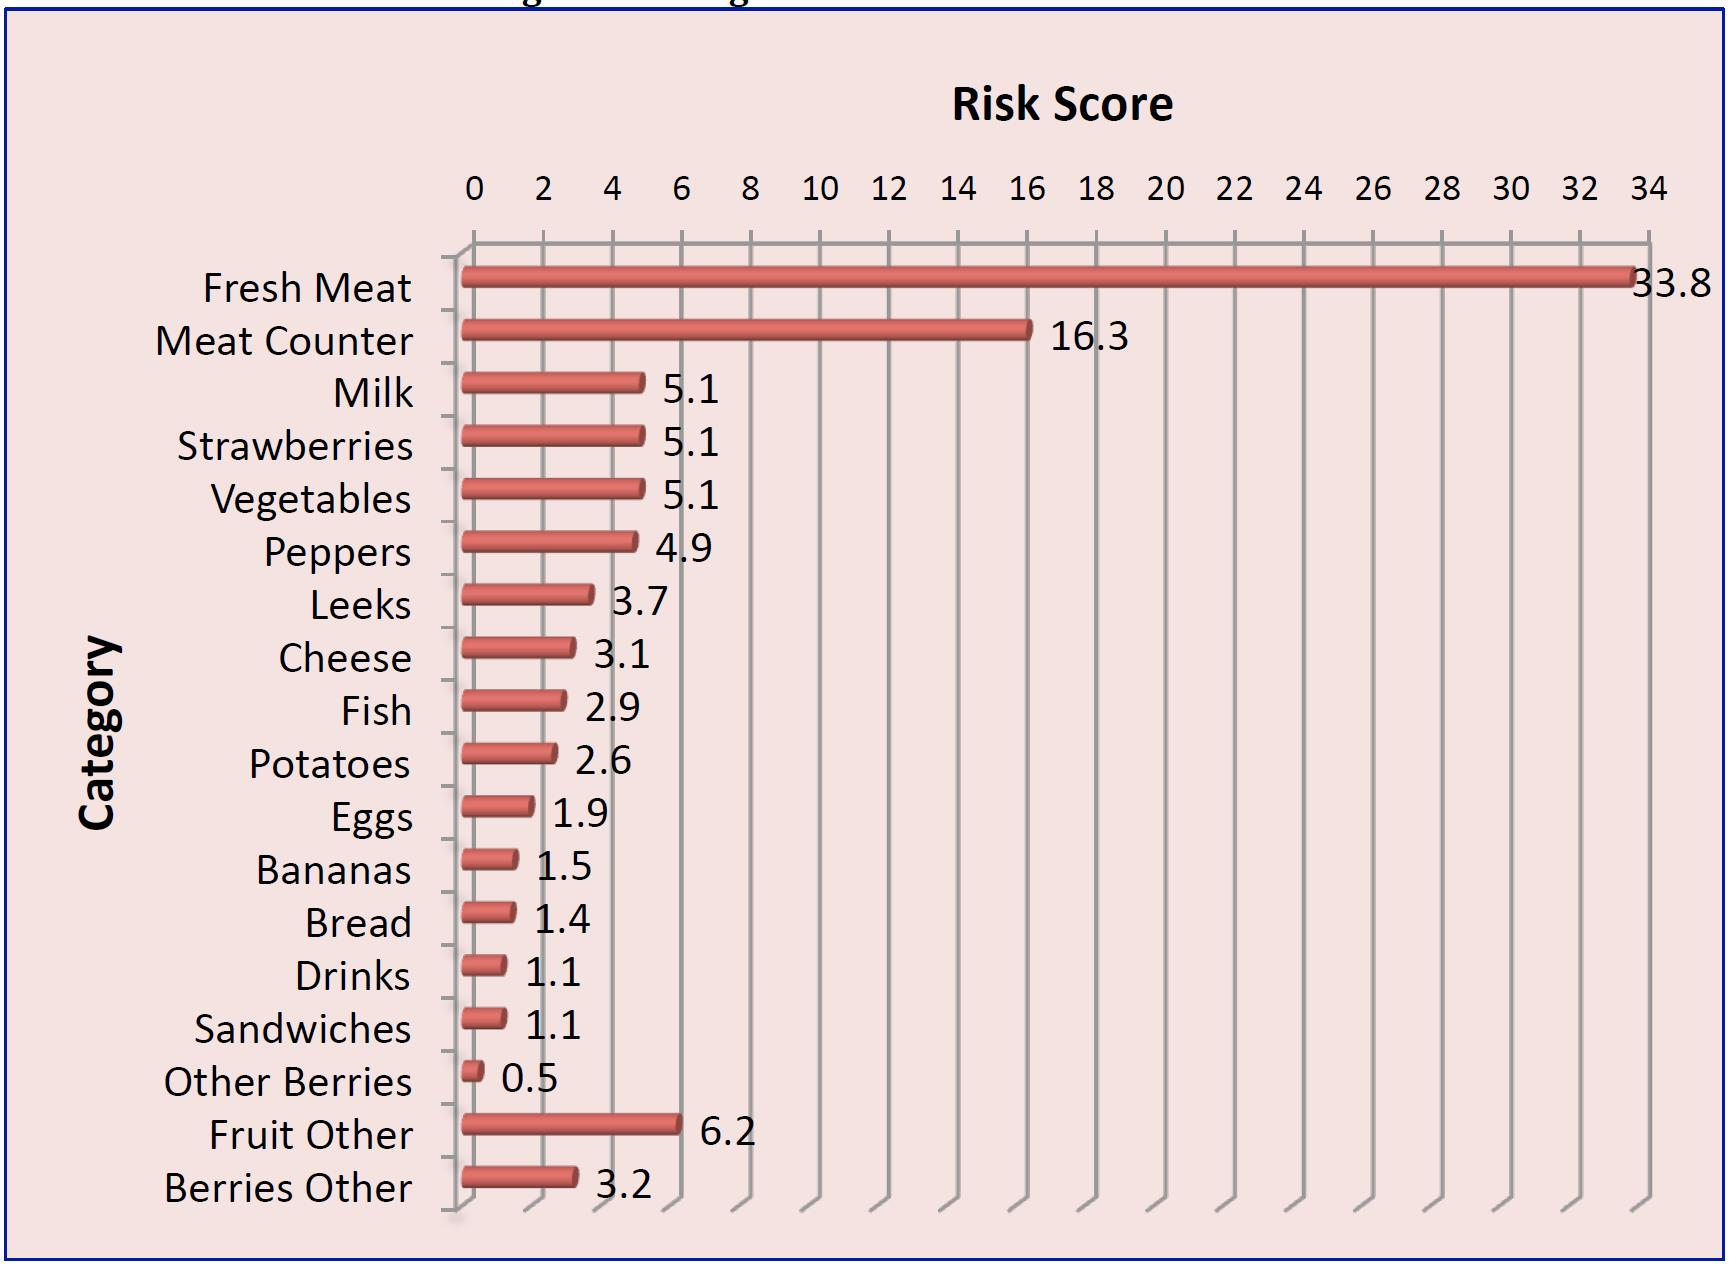 A chart showing risk scores of different types of products